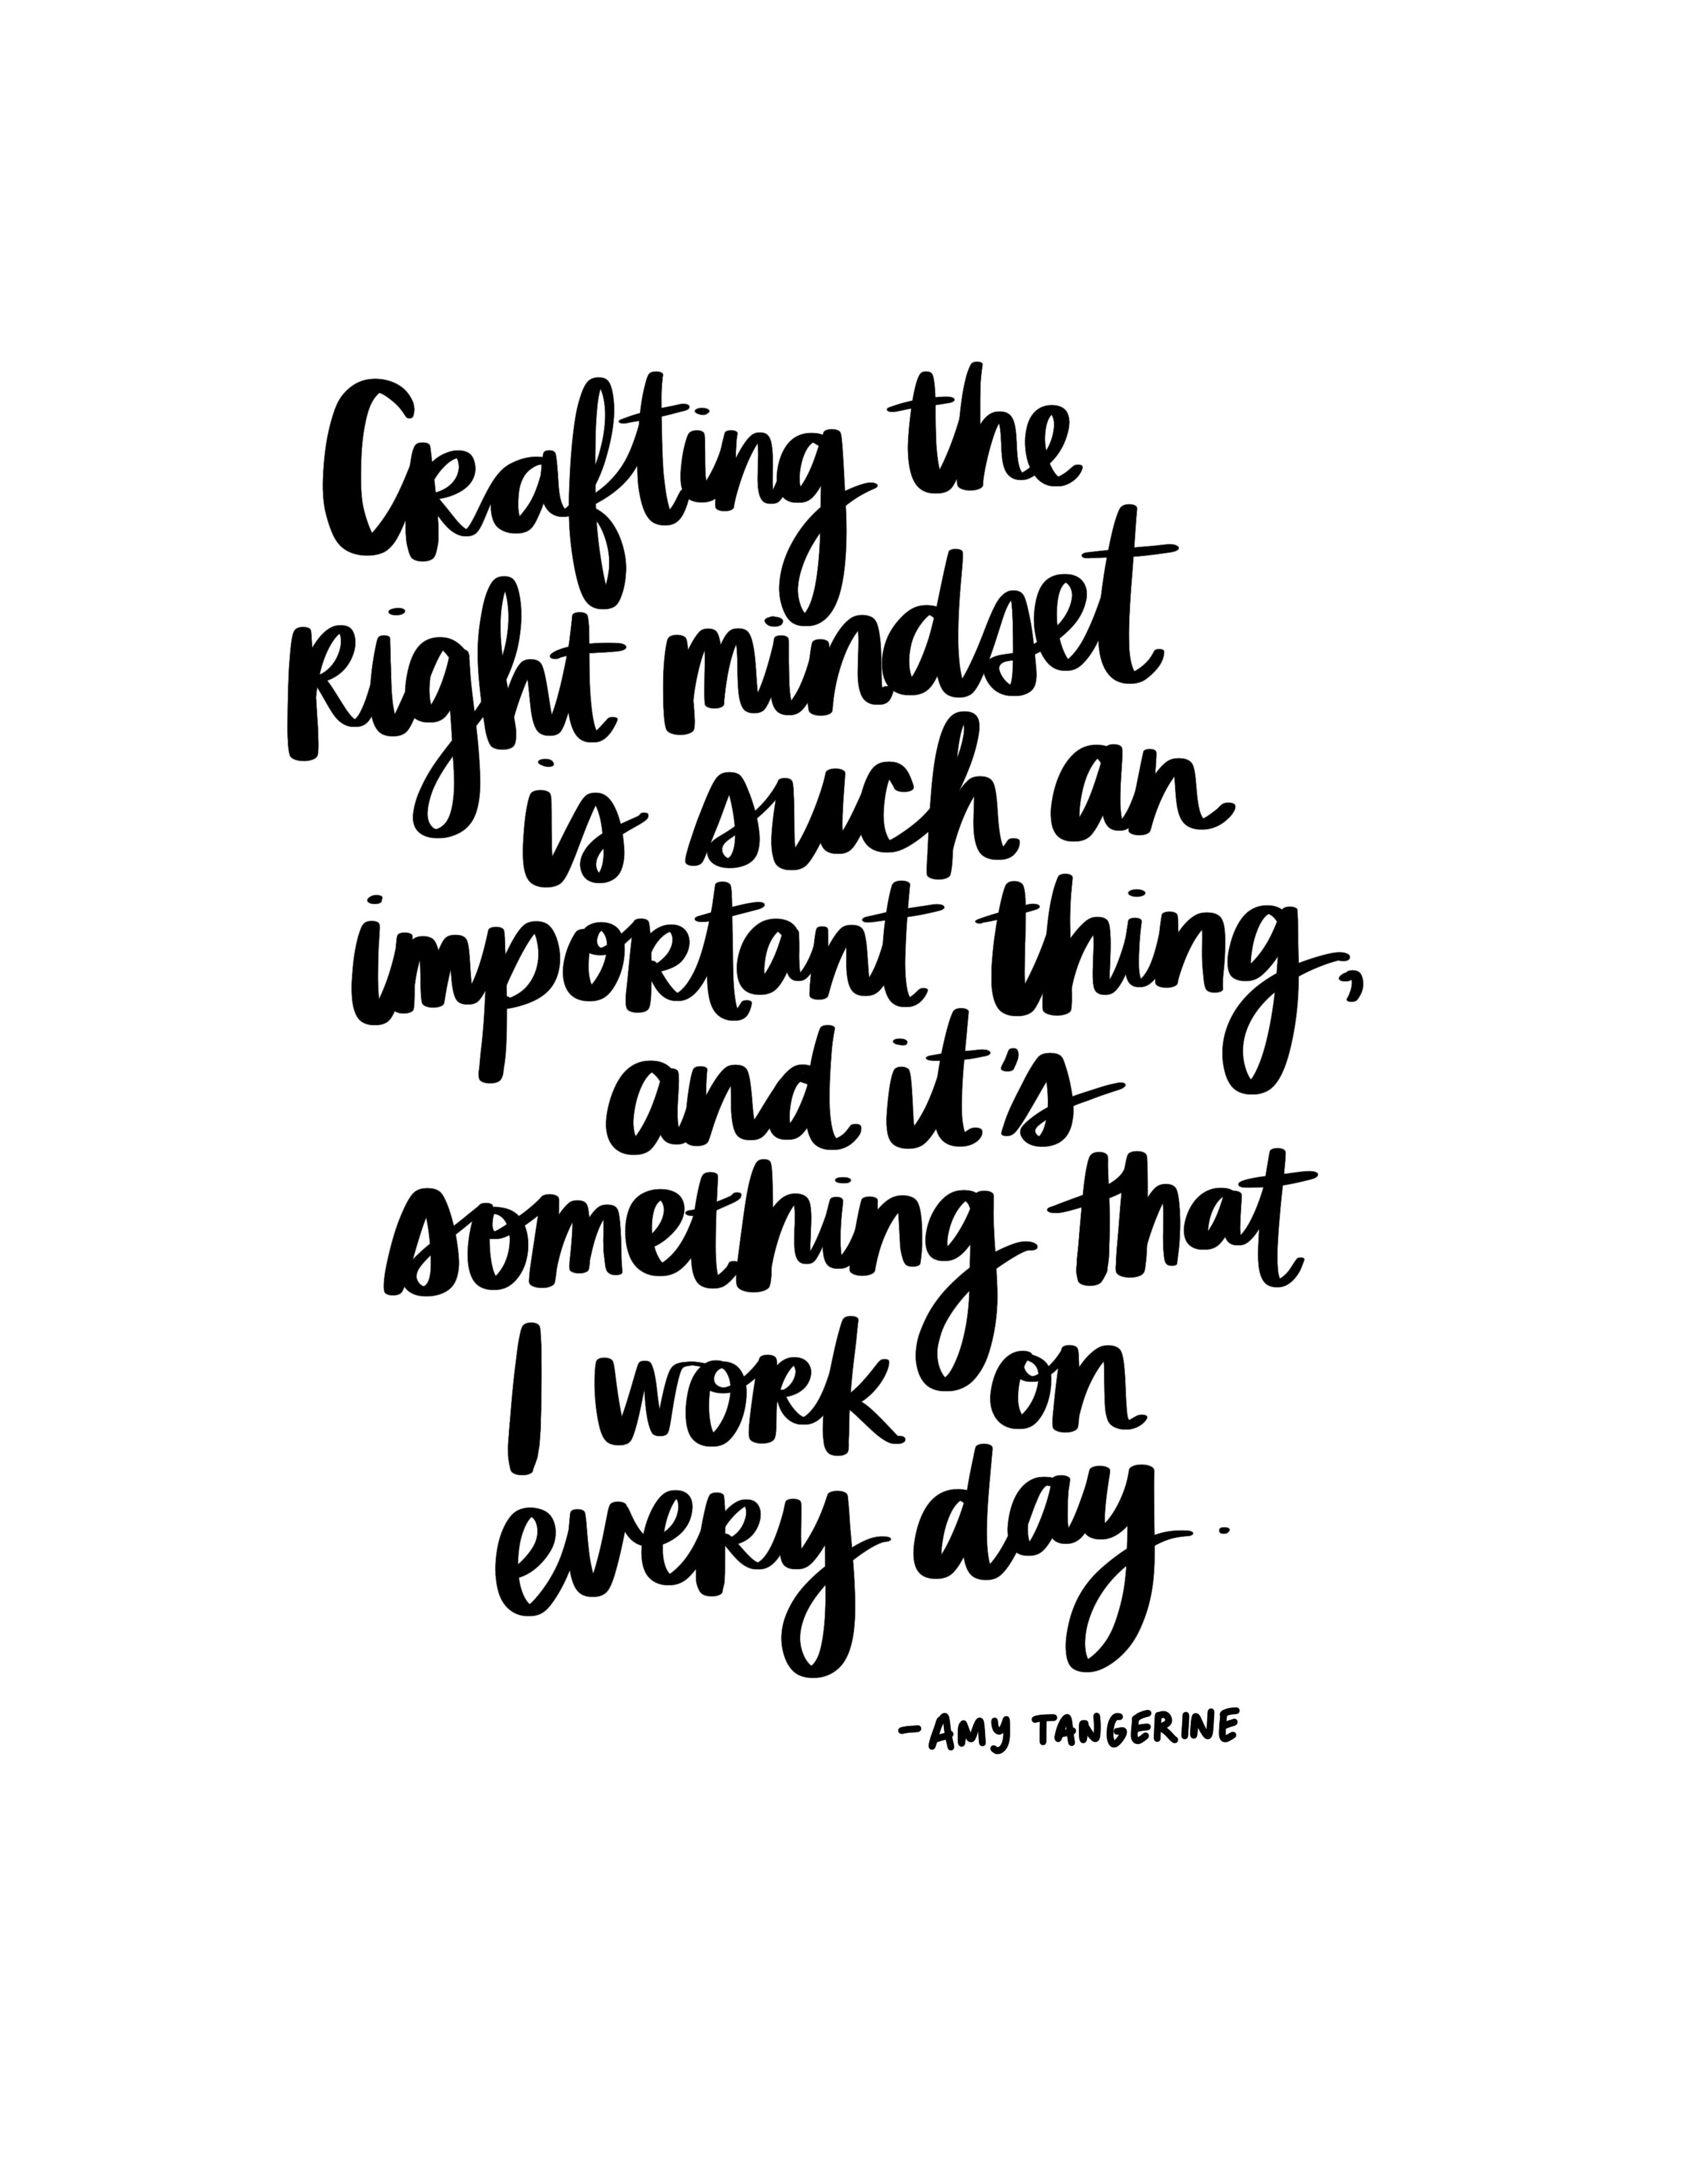 Crafting the Right Mindset